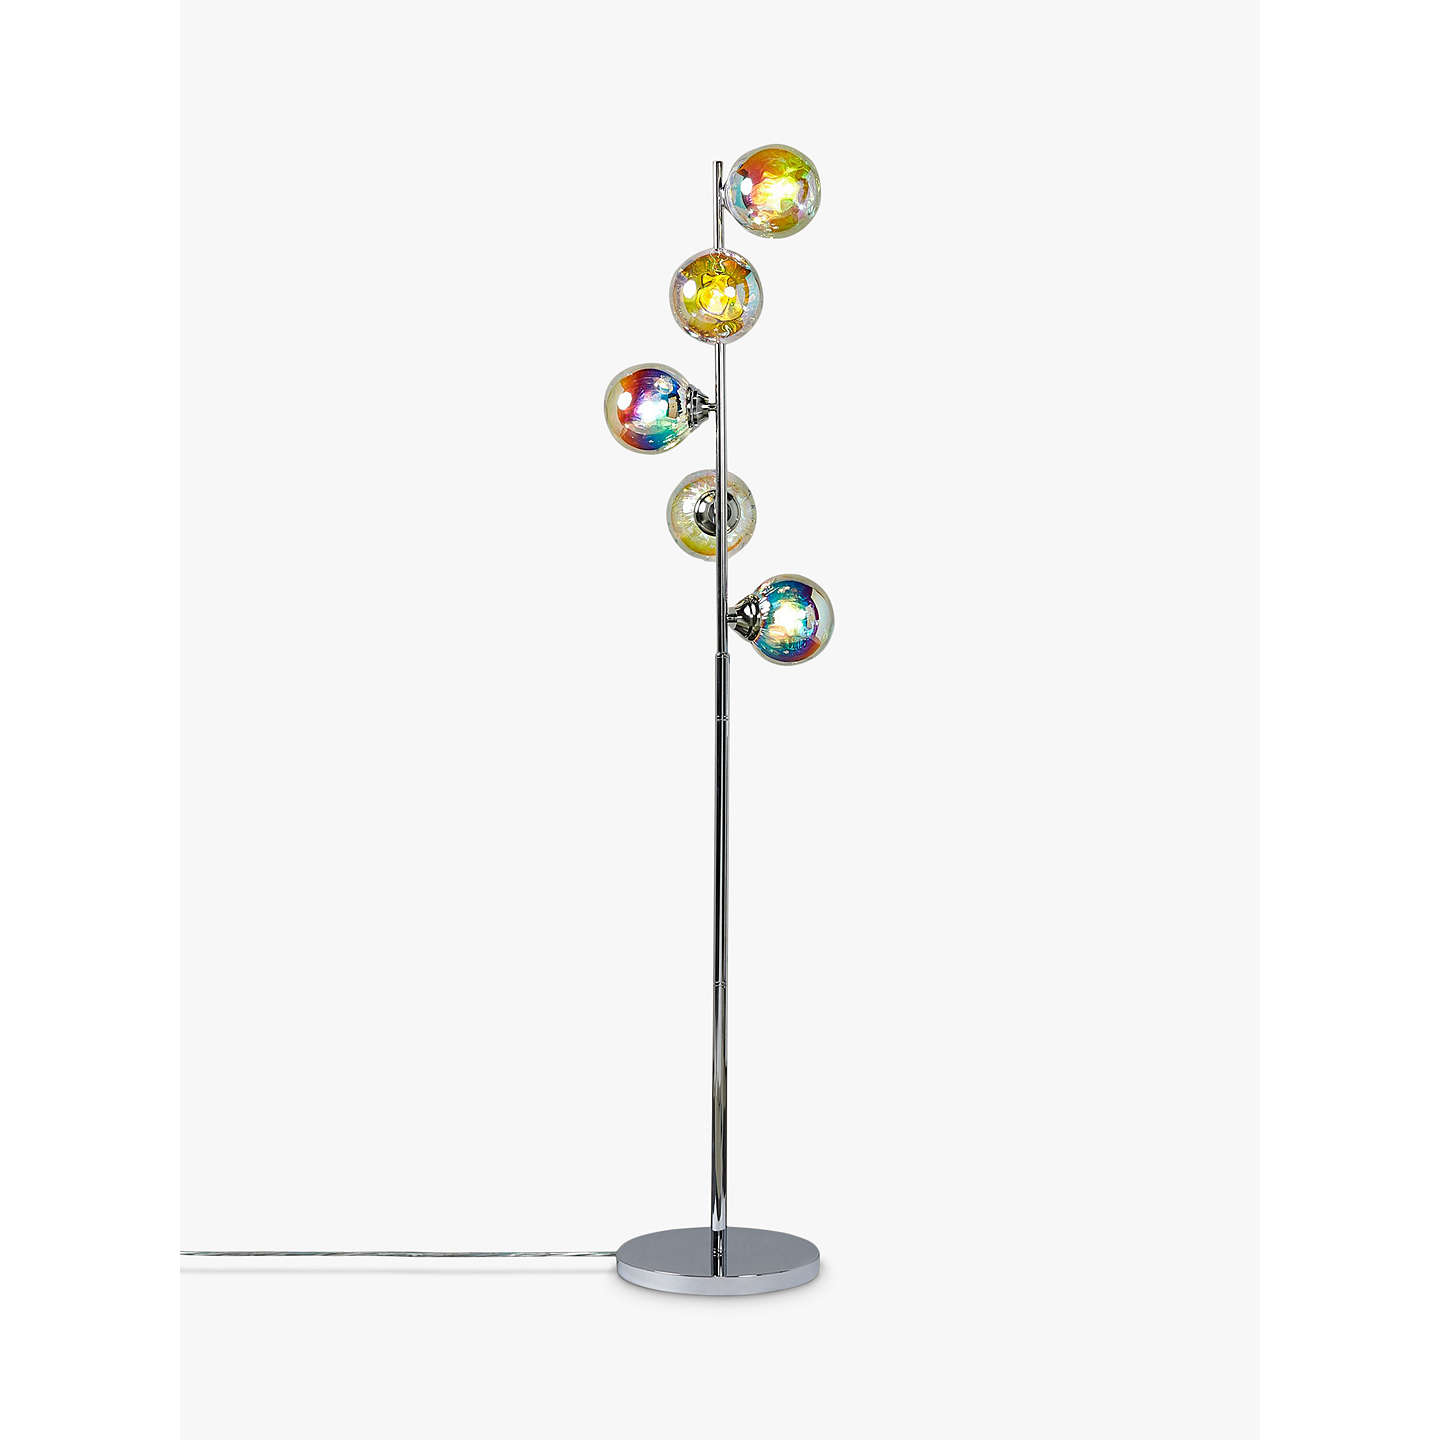 John lewis jester iridescent 5 light floor lamp multi at john lewis buyjohn lewis jester iridescent 5 light floor lamp multi online at johnlewis mozeypictures Choice Image